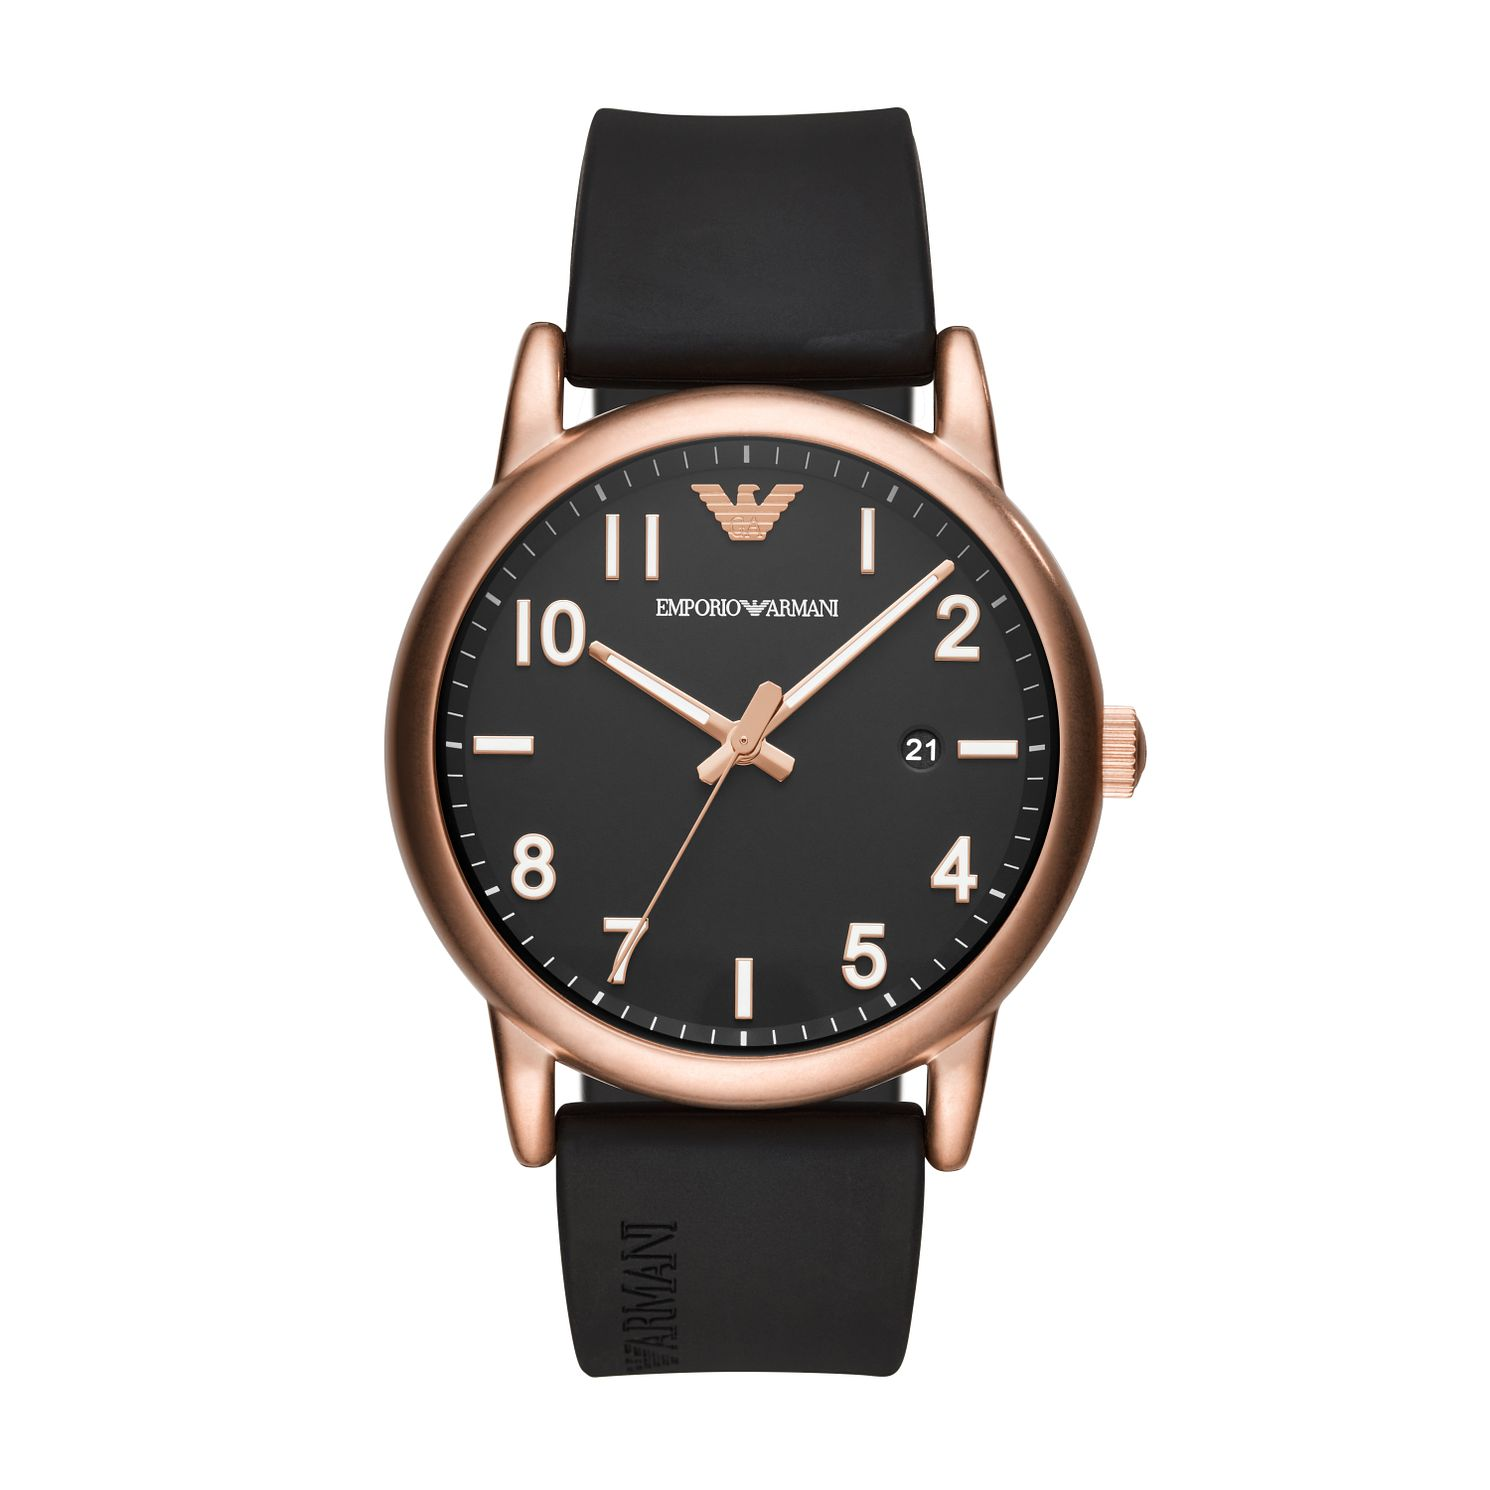 Emporio Armani Men's Black Rubber Strap Watch - Product number 5295491